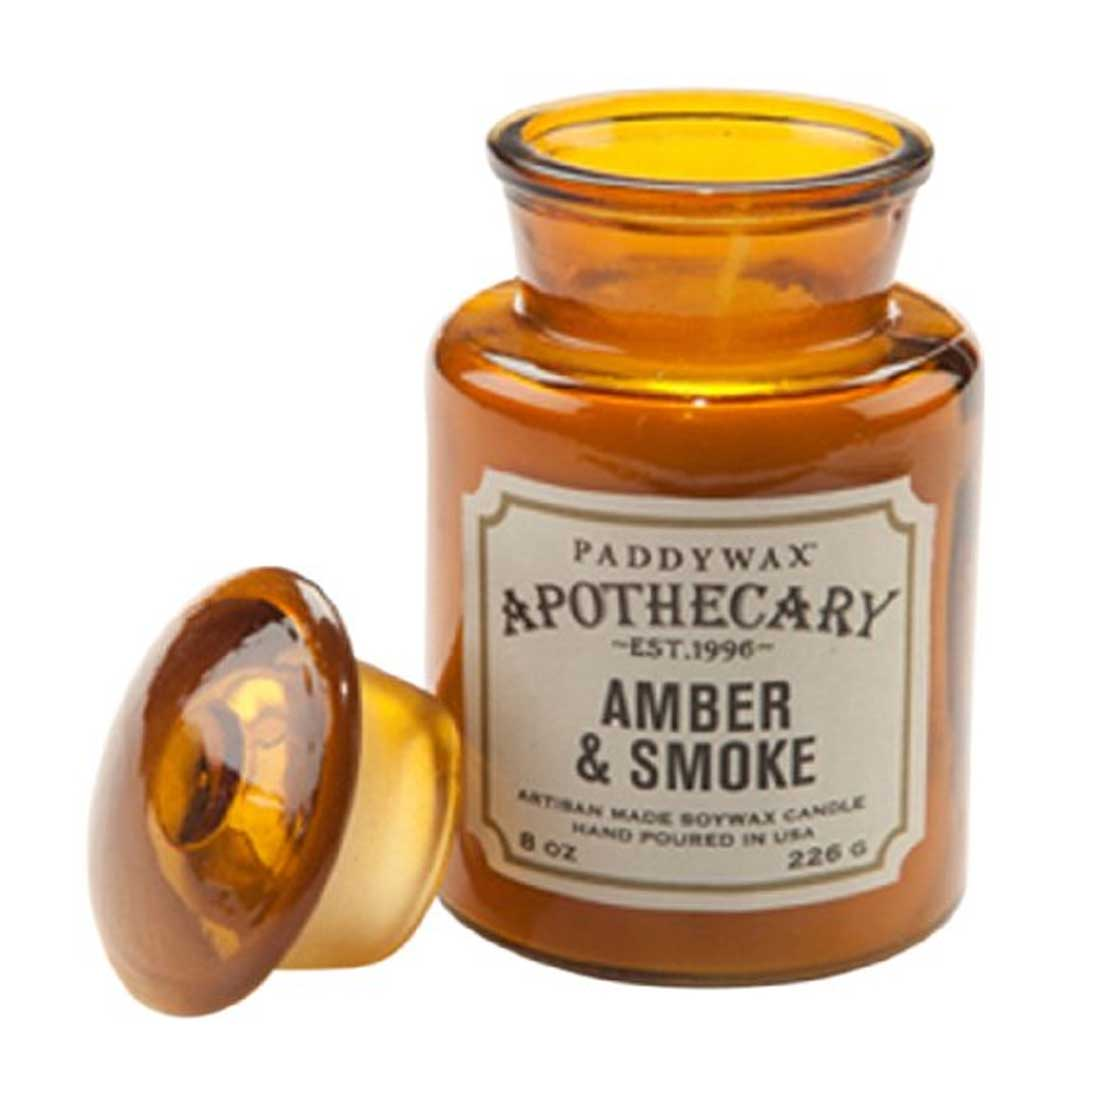 Paddywax-8-oz-Apothecary-Candle-Collection-Jar-ounces-Candle-Accessories